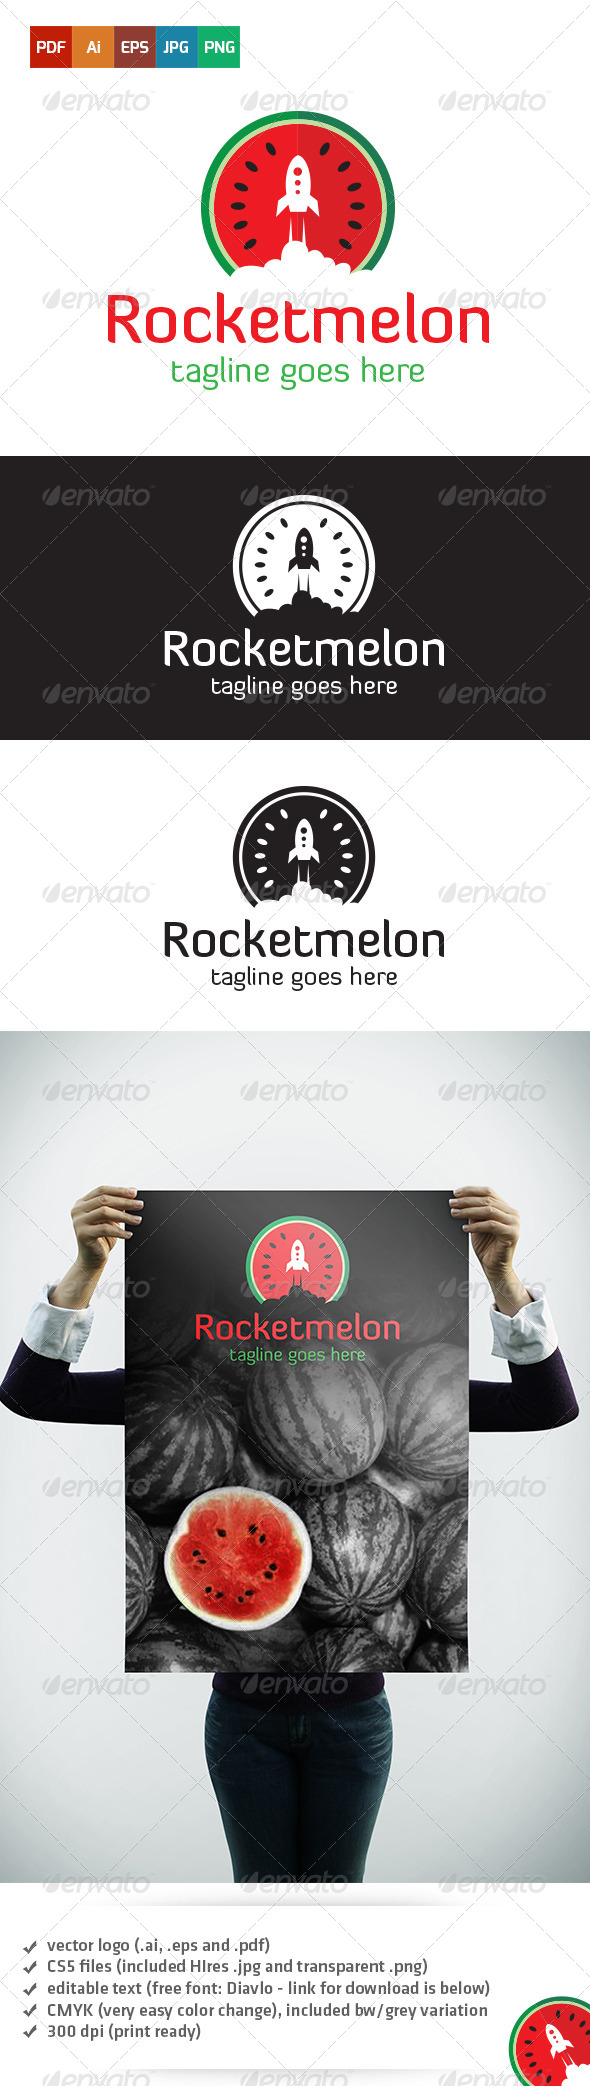 GraphicRiver Rocketmelon Logo 5359022